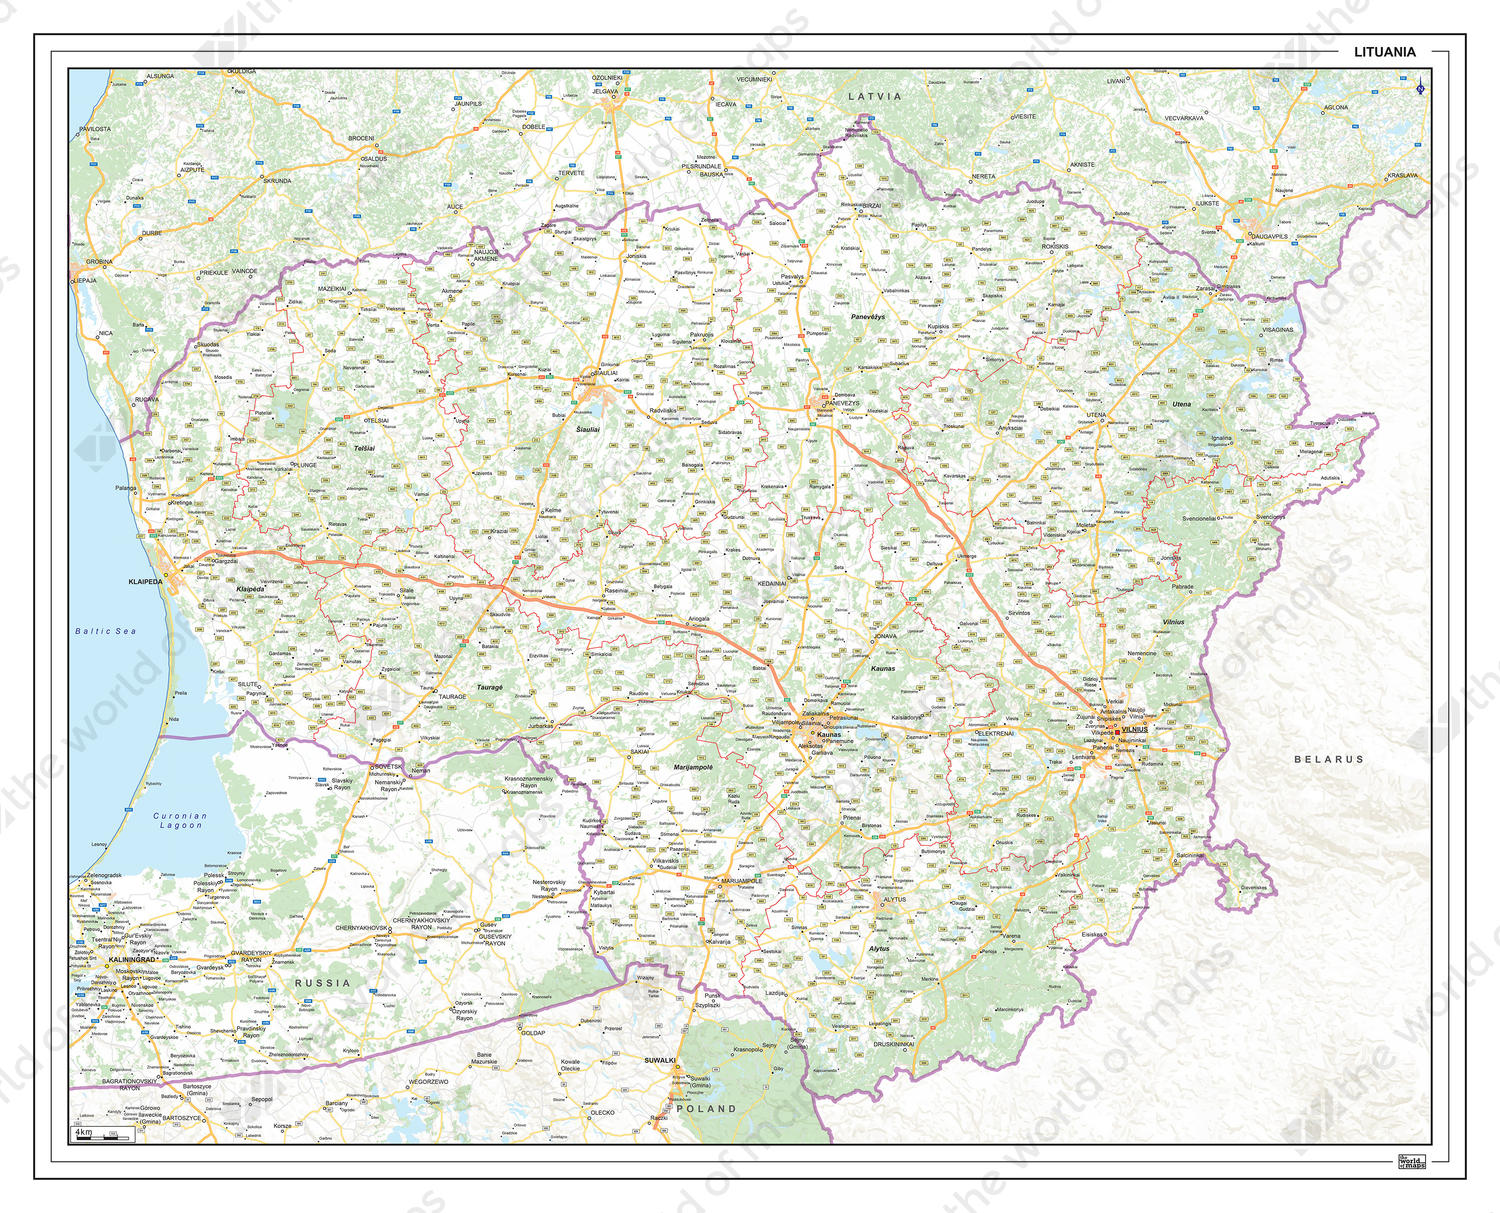 Image of: Digital Roadmap Lithuania 1368 The World Of Maps Com